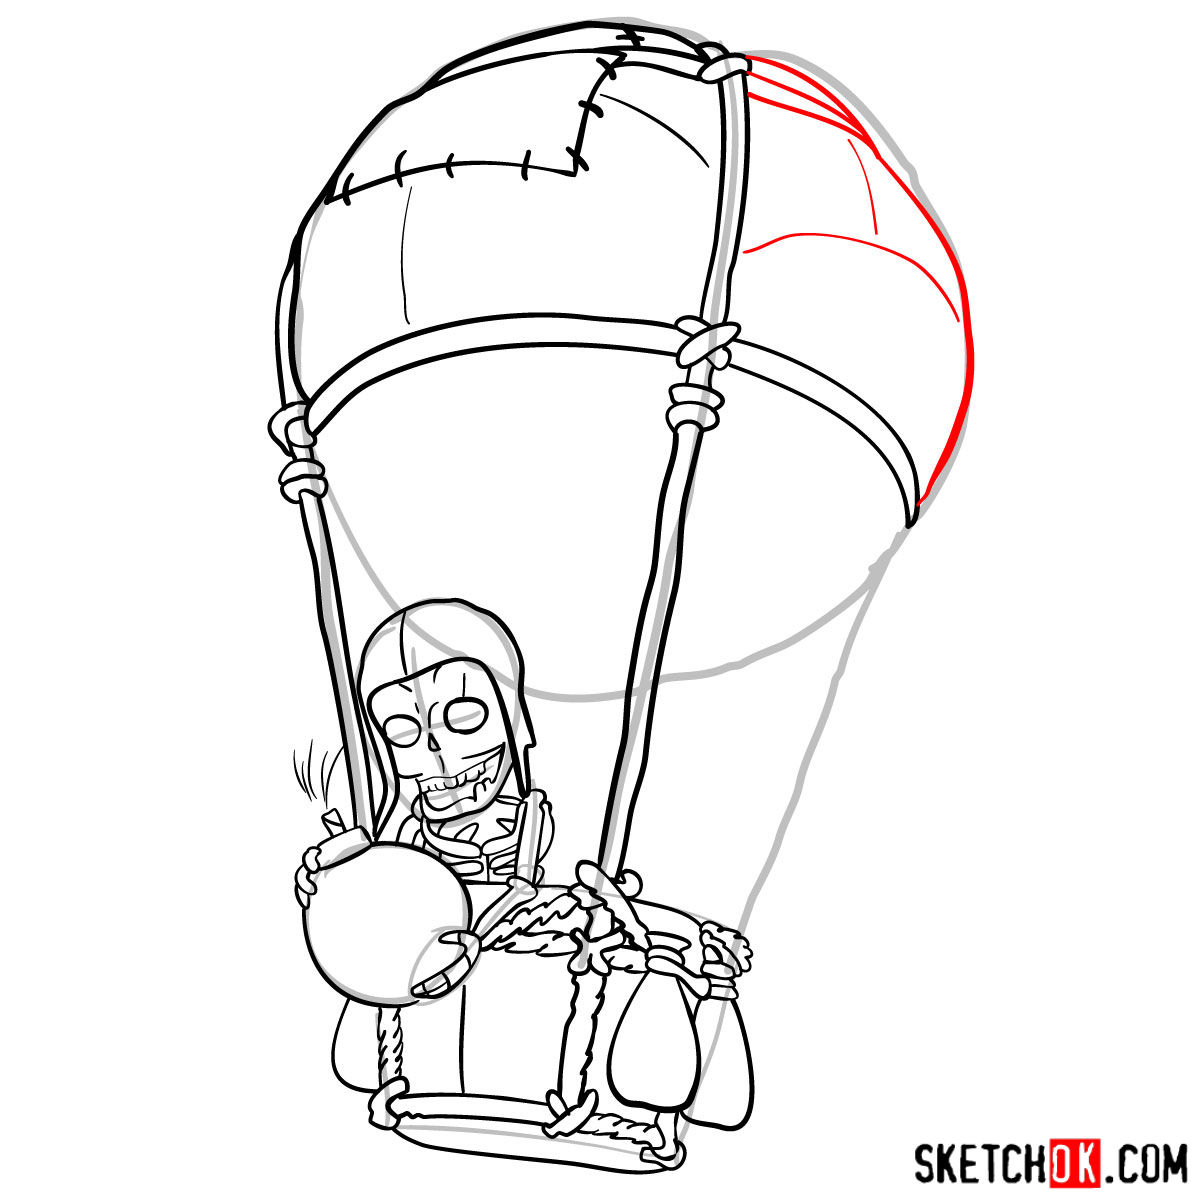 How to draw Balloon with a skeleton - step 10